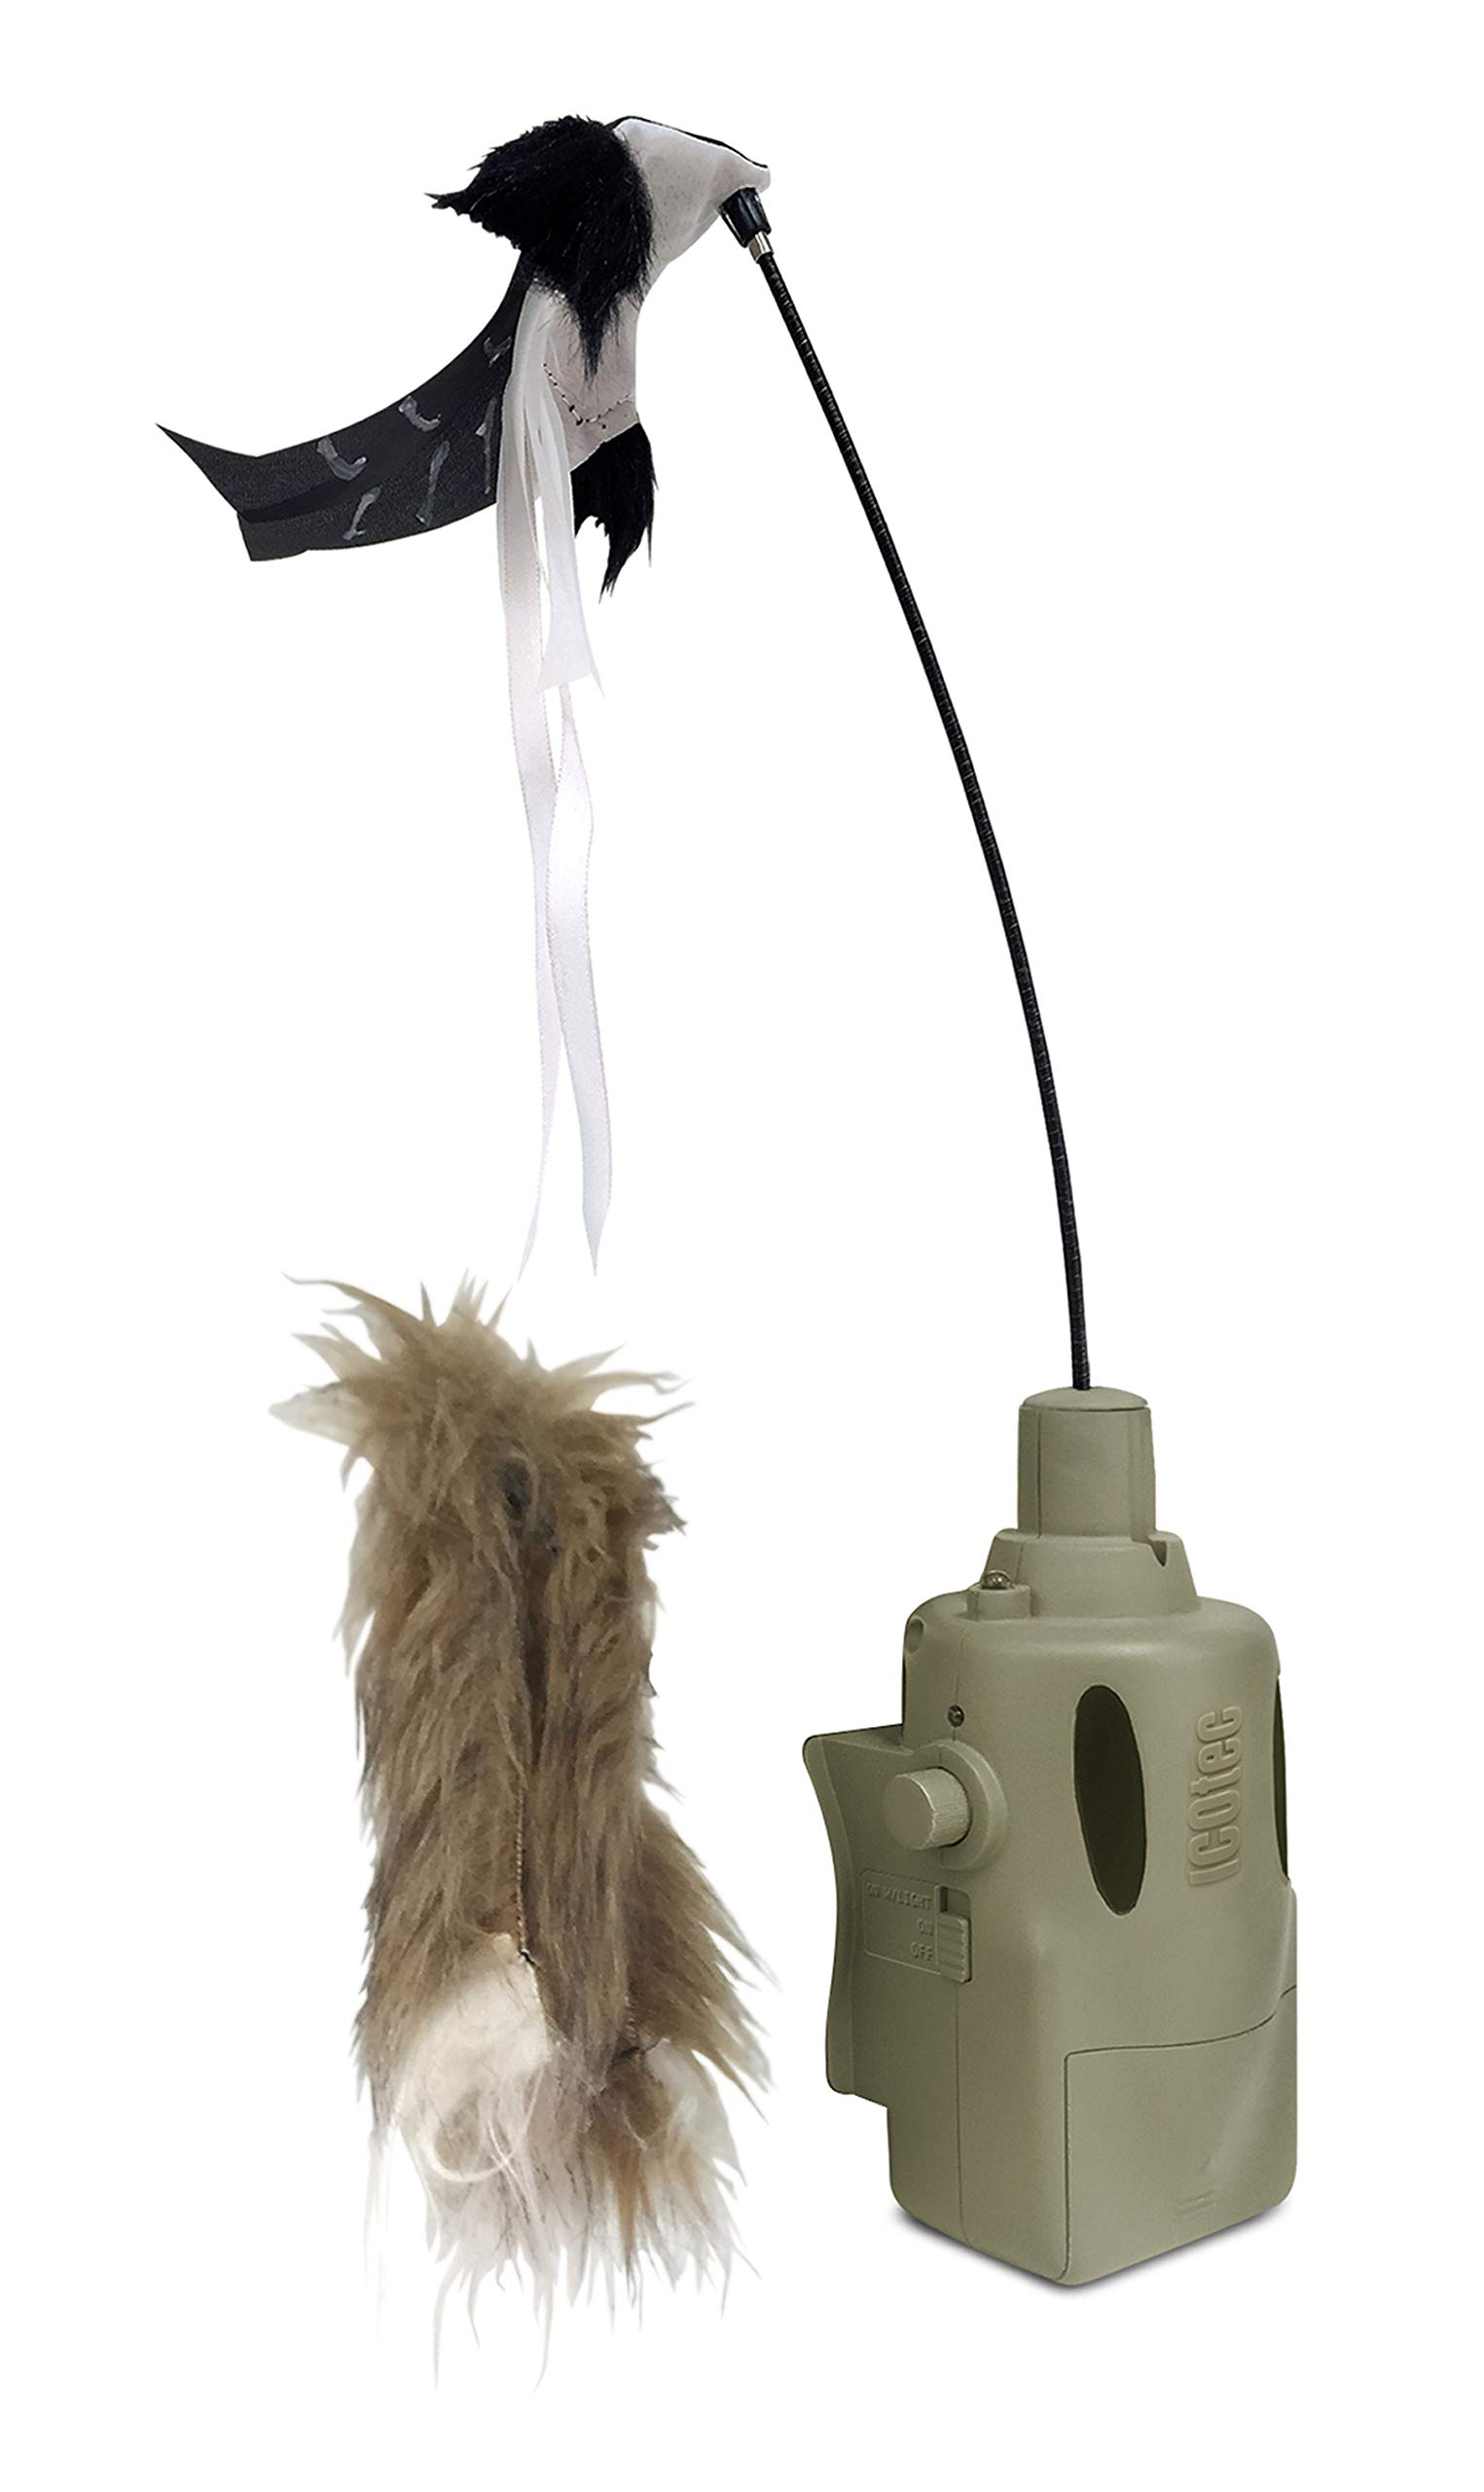 Icotec PD400 Predator Decoy - Lightweight, Compact, and Quiet - Includes Speed Dial, Intermittent Motion, LED Lights, 2 Quick Change Toppers - for Use GC300, GC320, GC350 and GC500